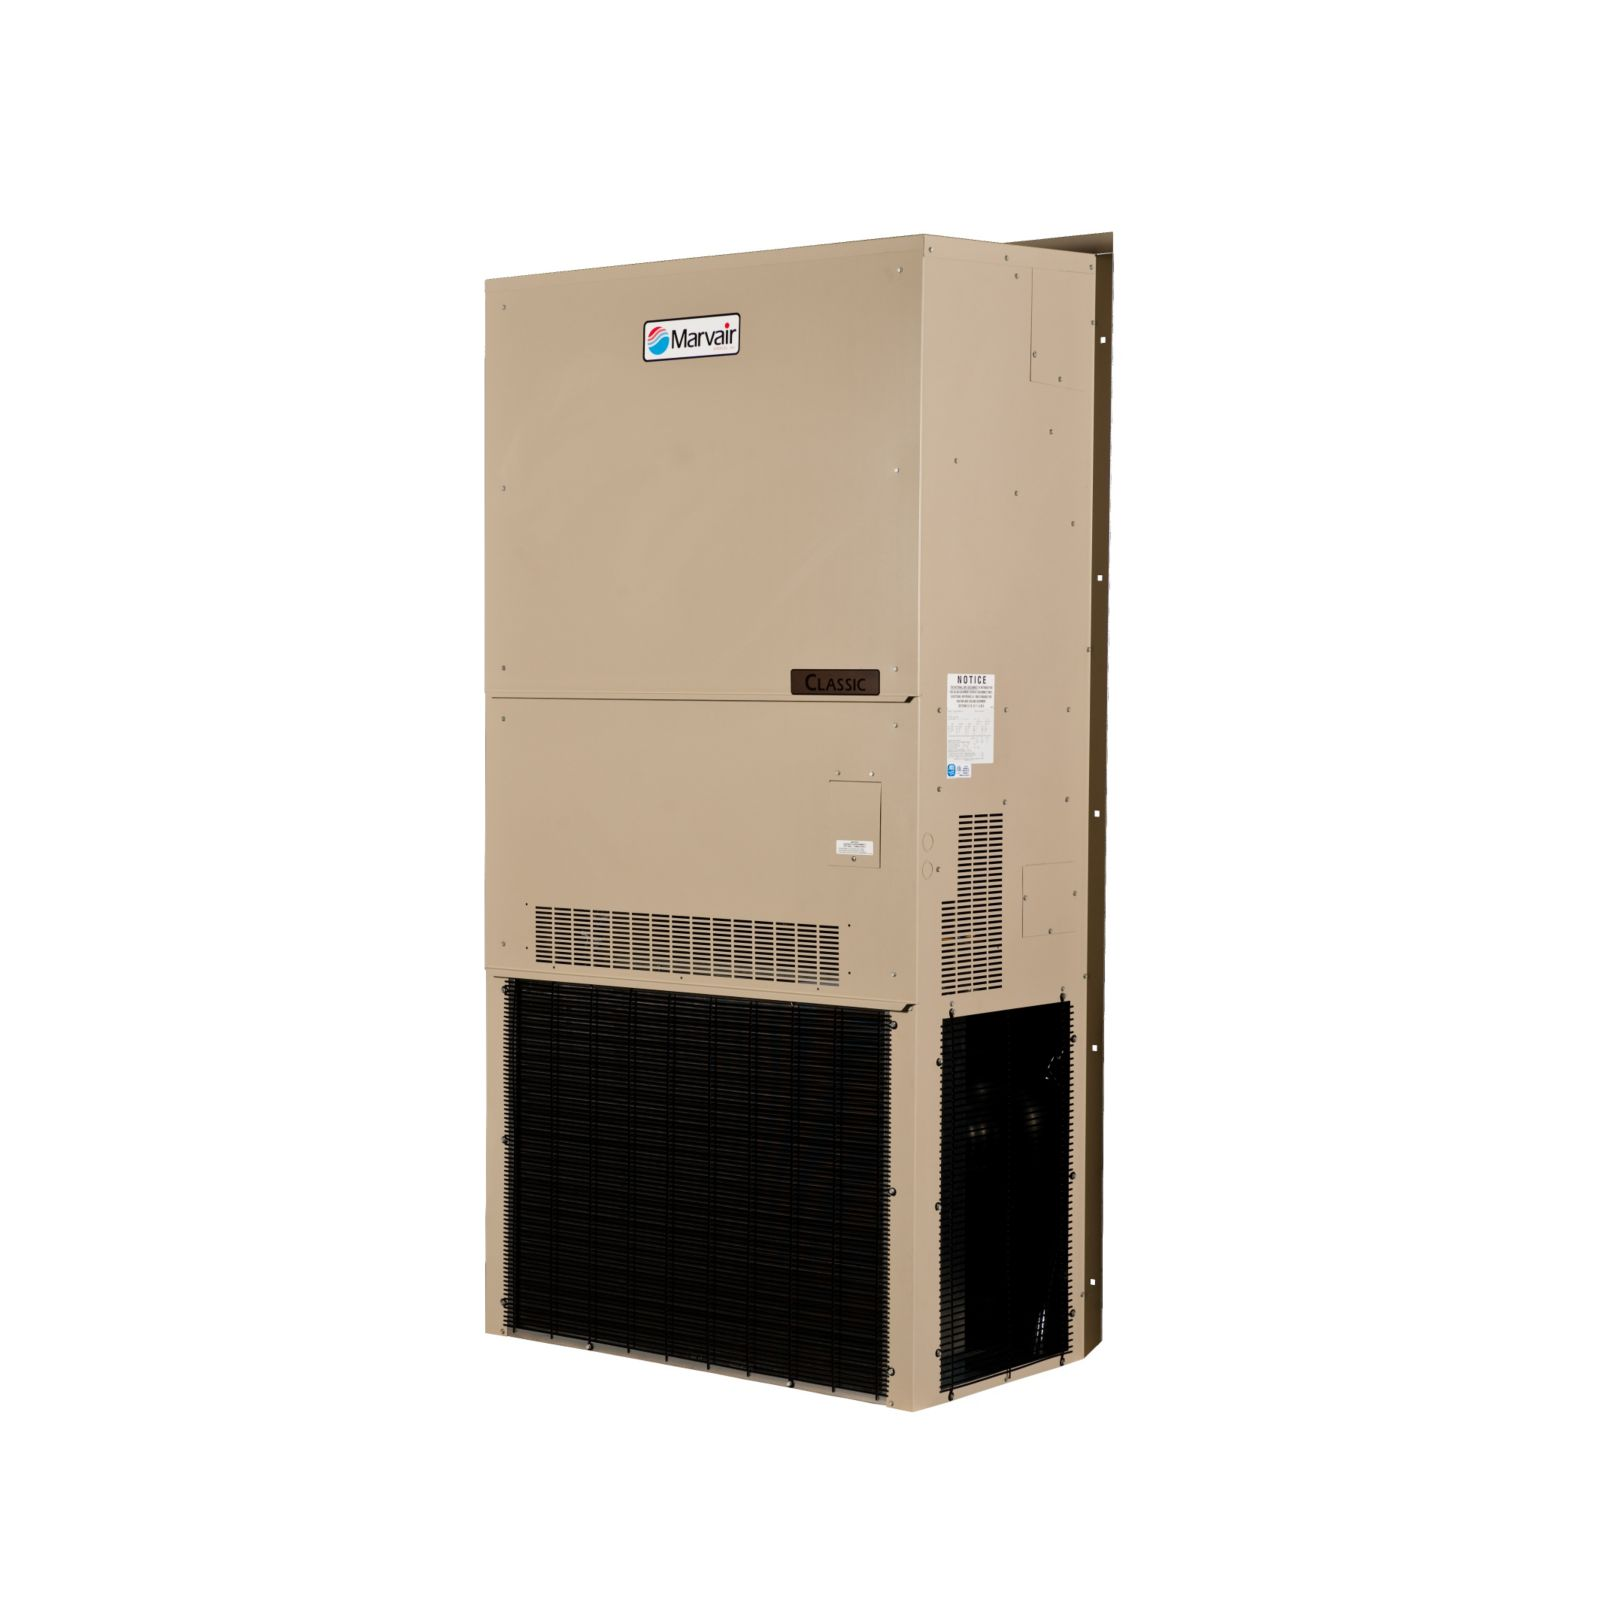 marvair avpa36aca000m5 a2 100 wall mount ac modpac 3 ton 208 view full size in new tab